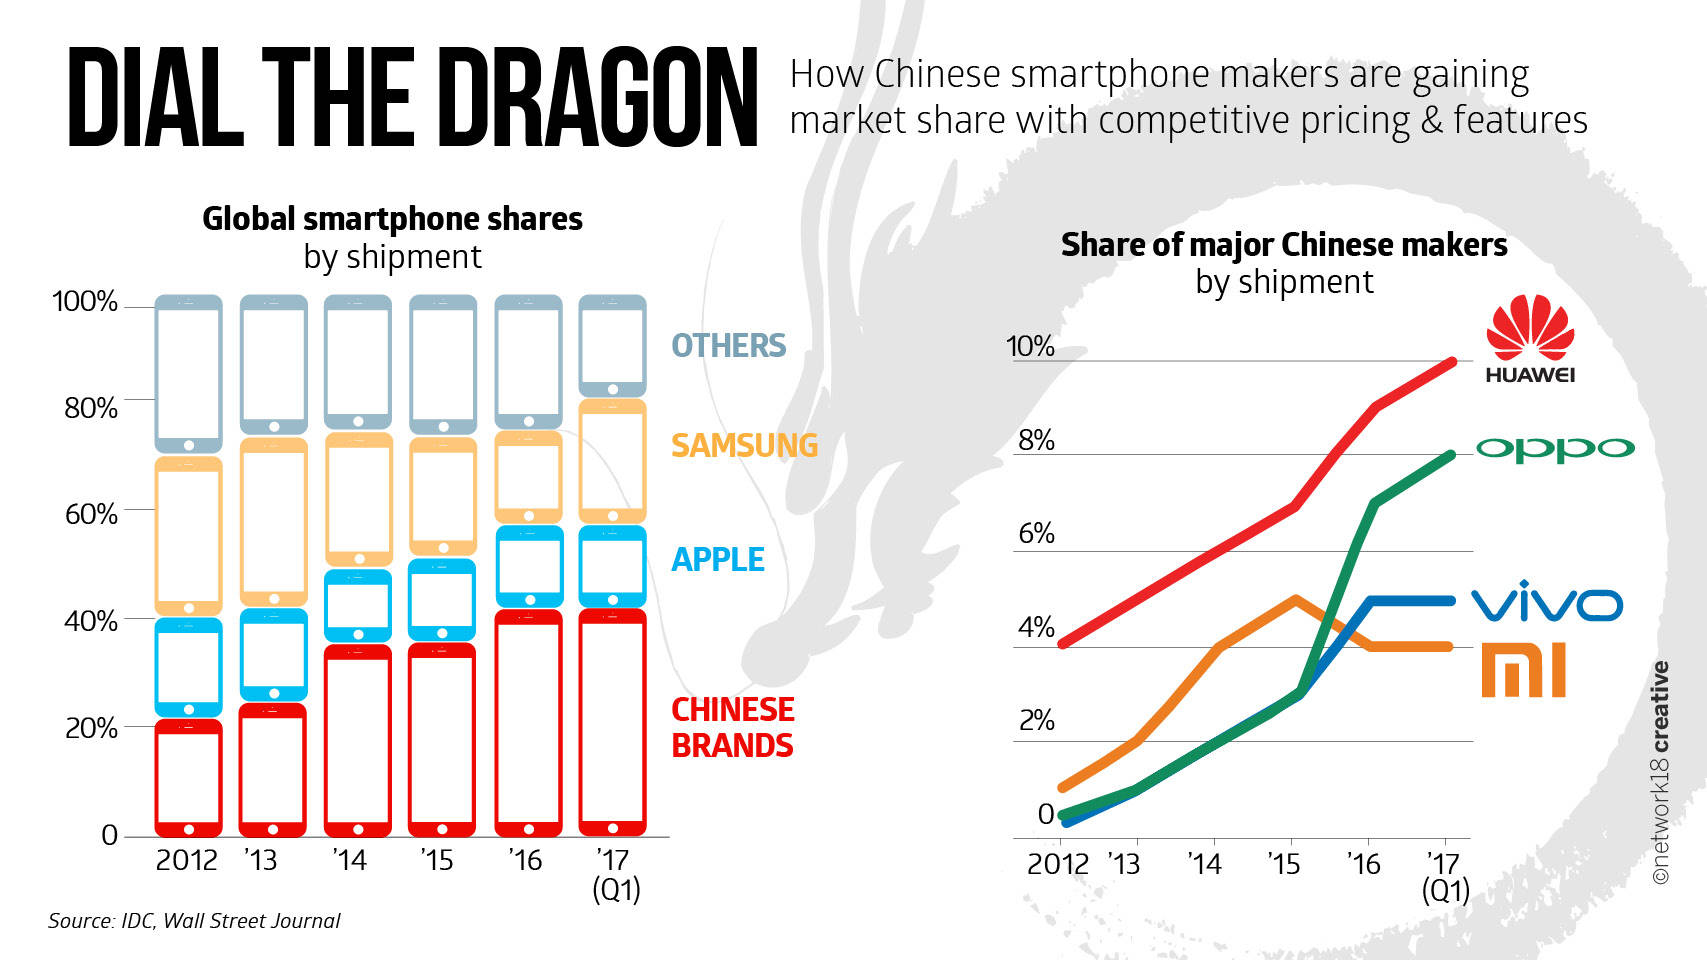 Huawei Beats Apple to Become 2nd Largest Smartphone Brand